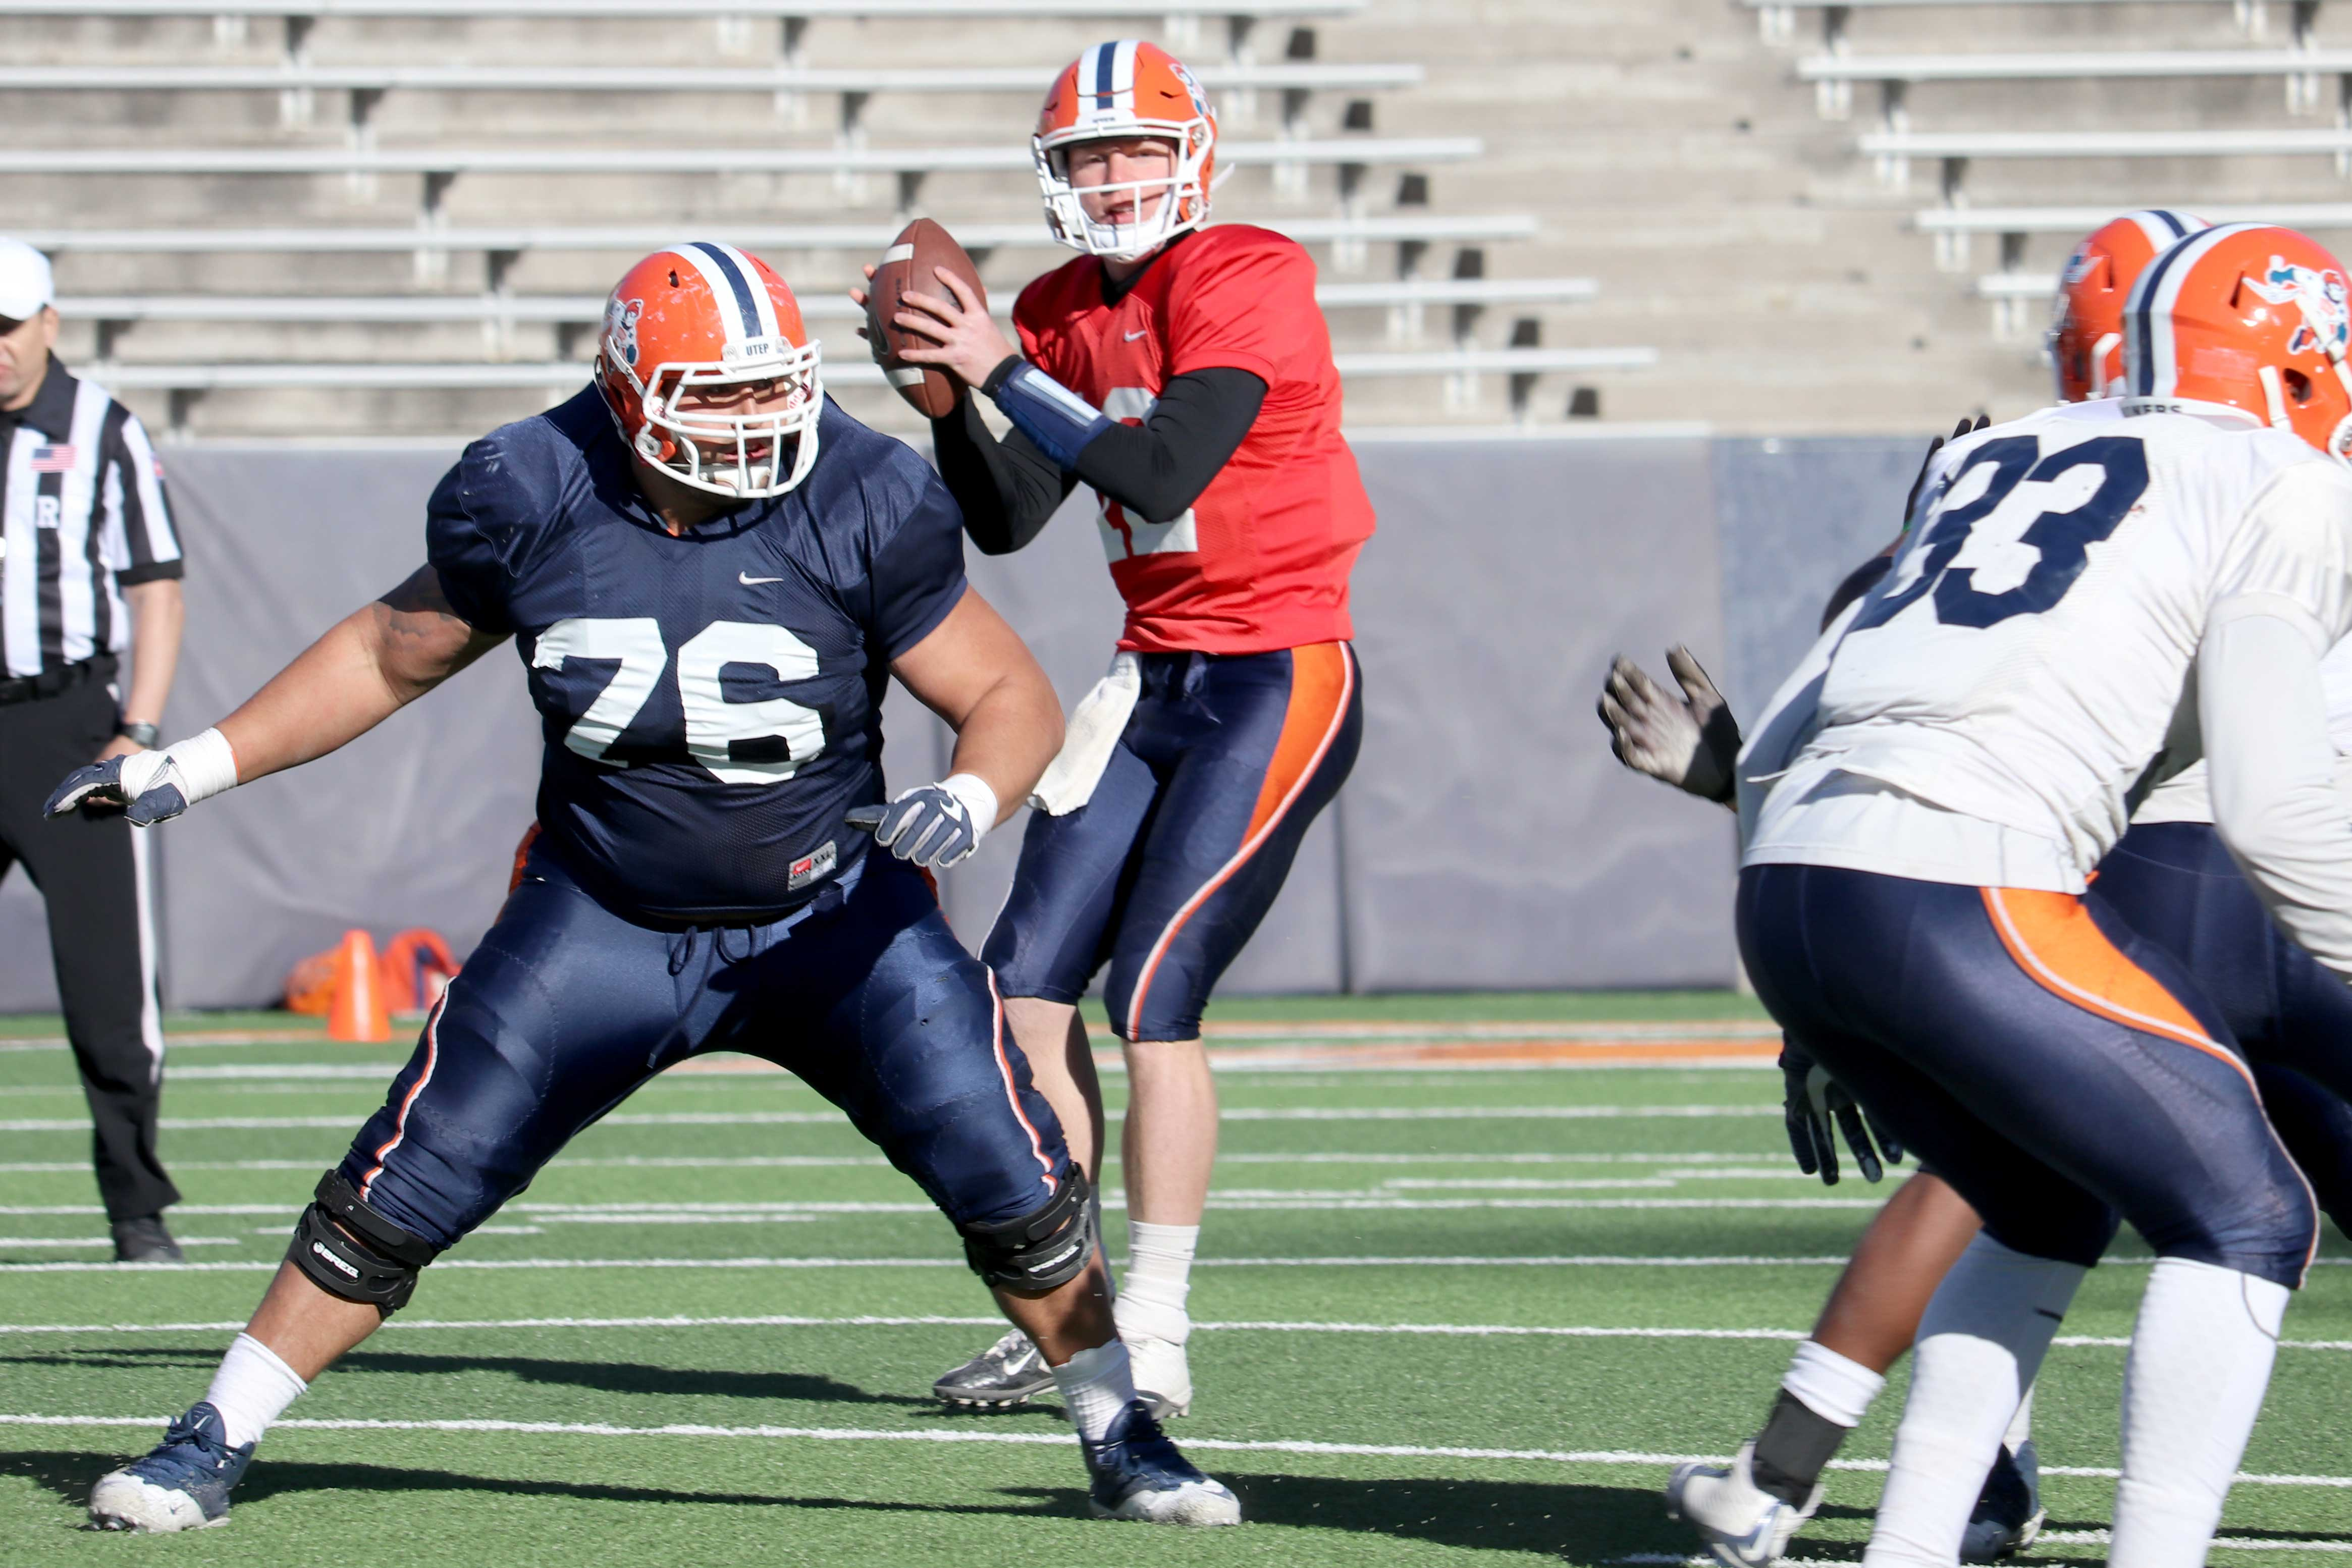 In his junior season, quarterback Ryan Metz enters spring practice for the first time knowing that he is the starting quarterback for the Miners.